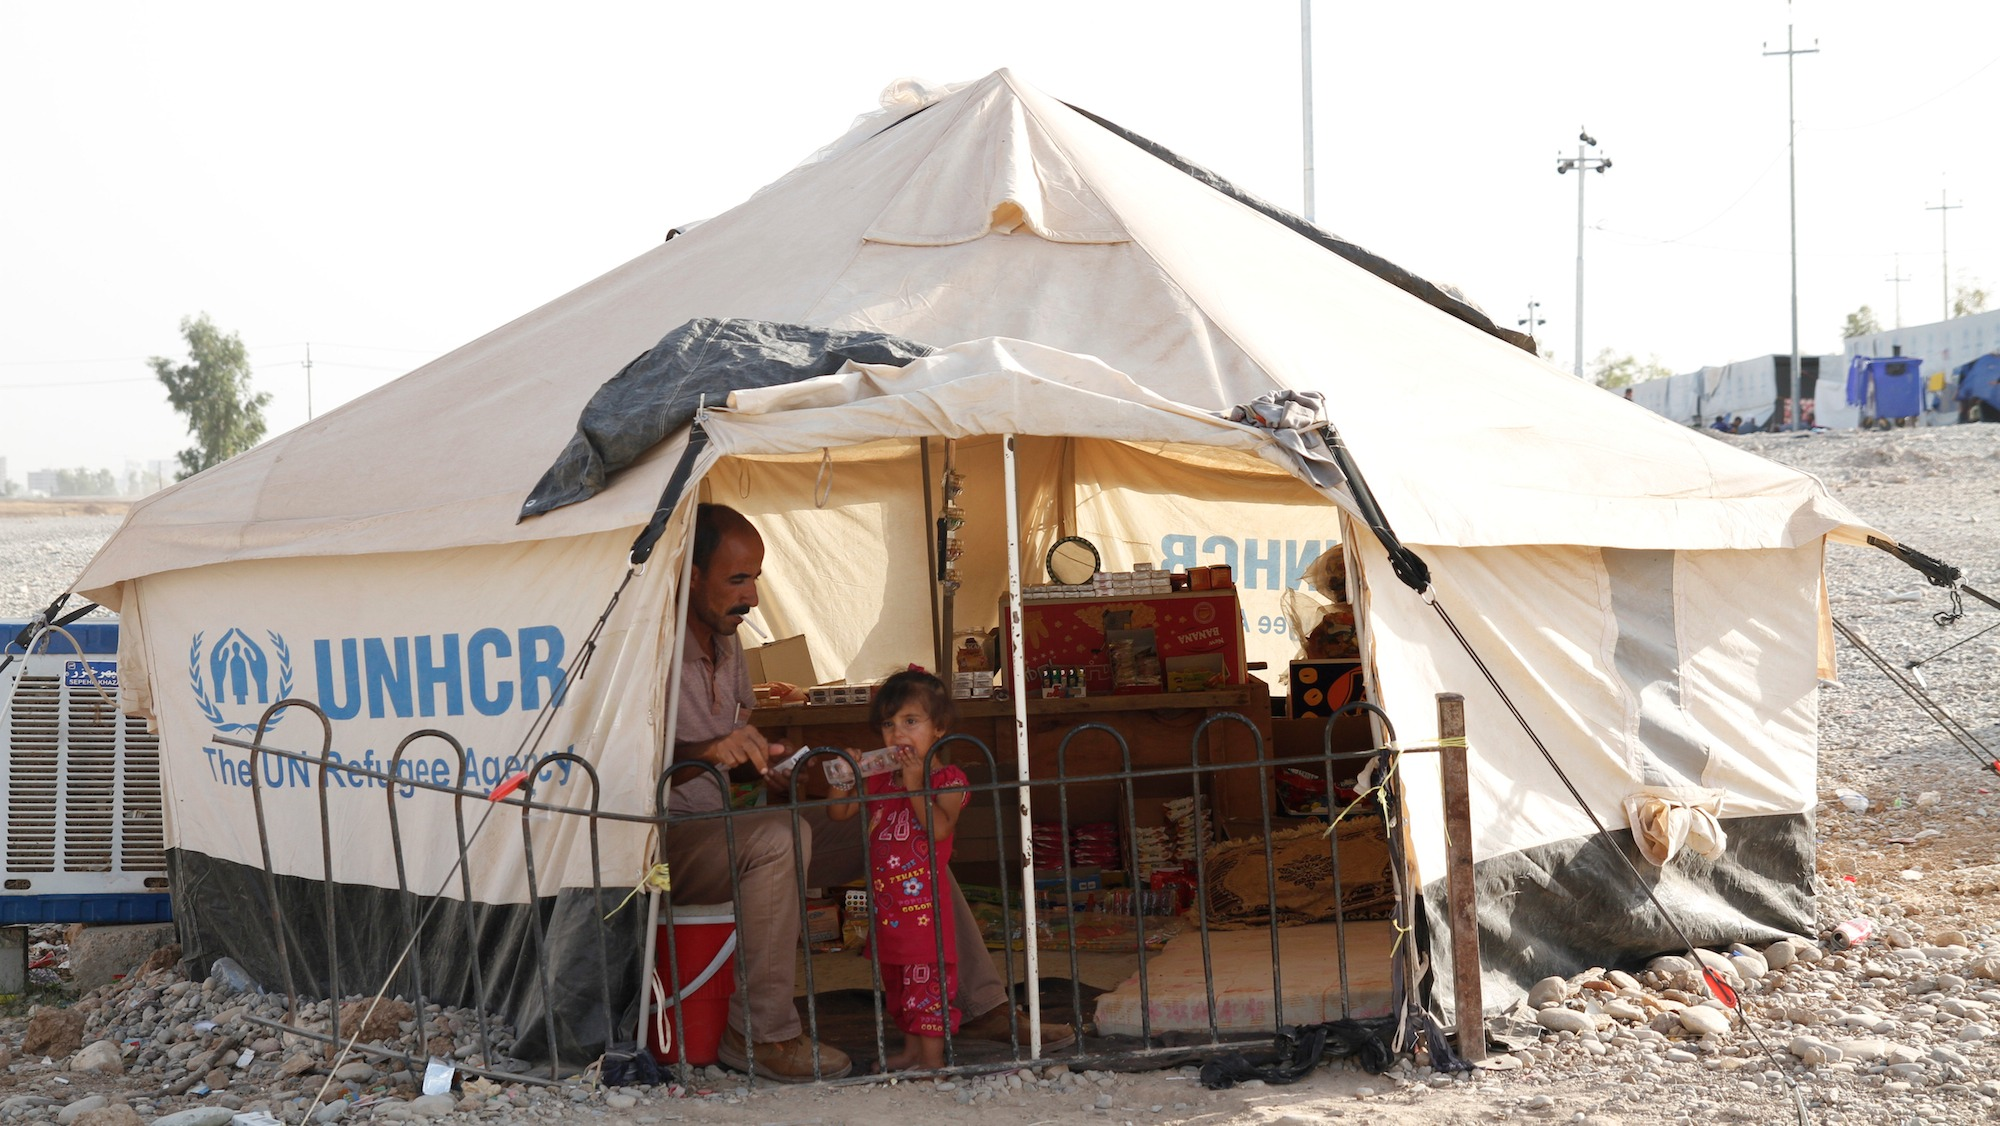 Syrian refugees and Iraqi refugees live in separate camps in northern Iraq